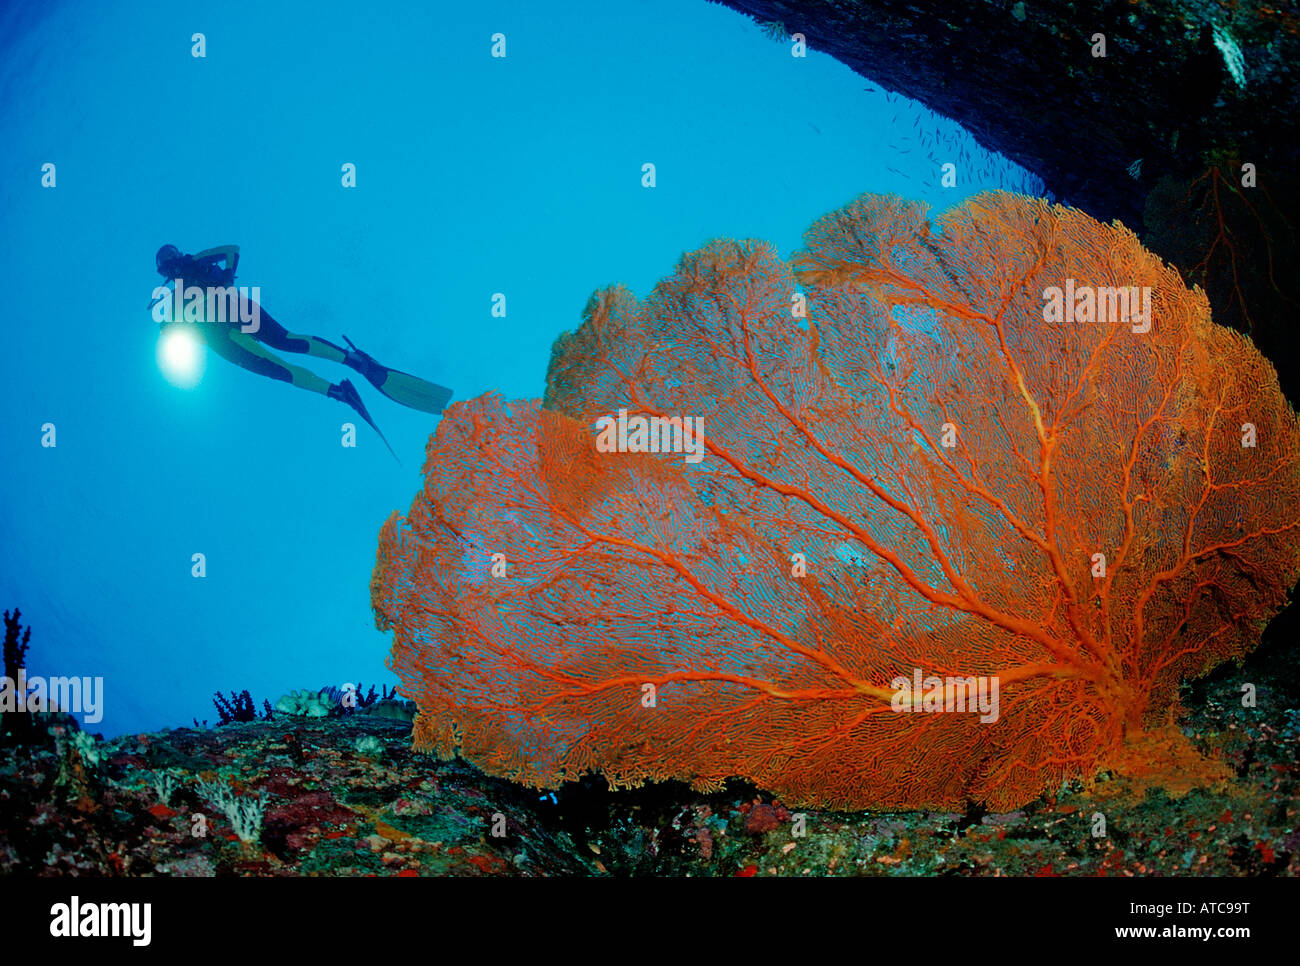 Taucher und Red Sea Fan Similan Inseln-Thailand Stockbild